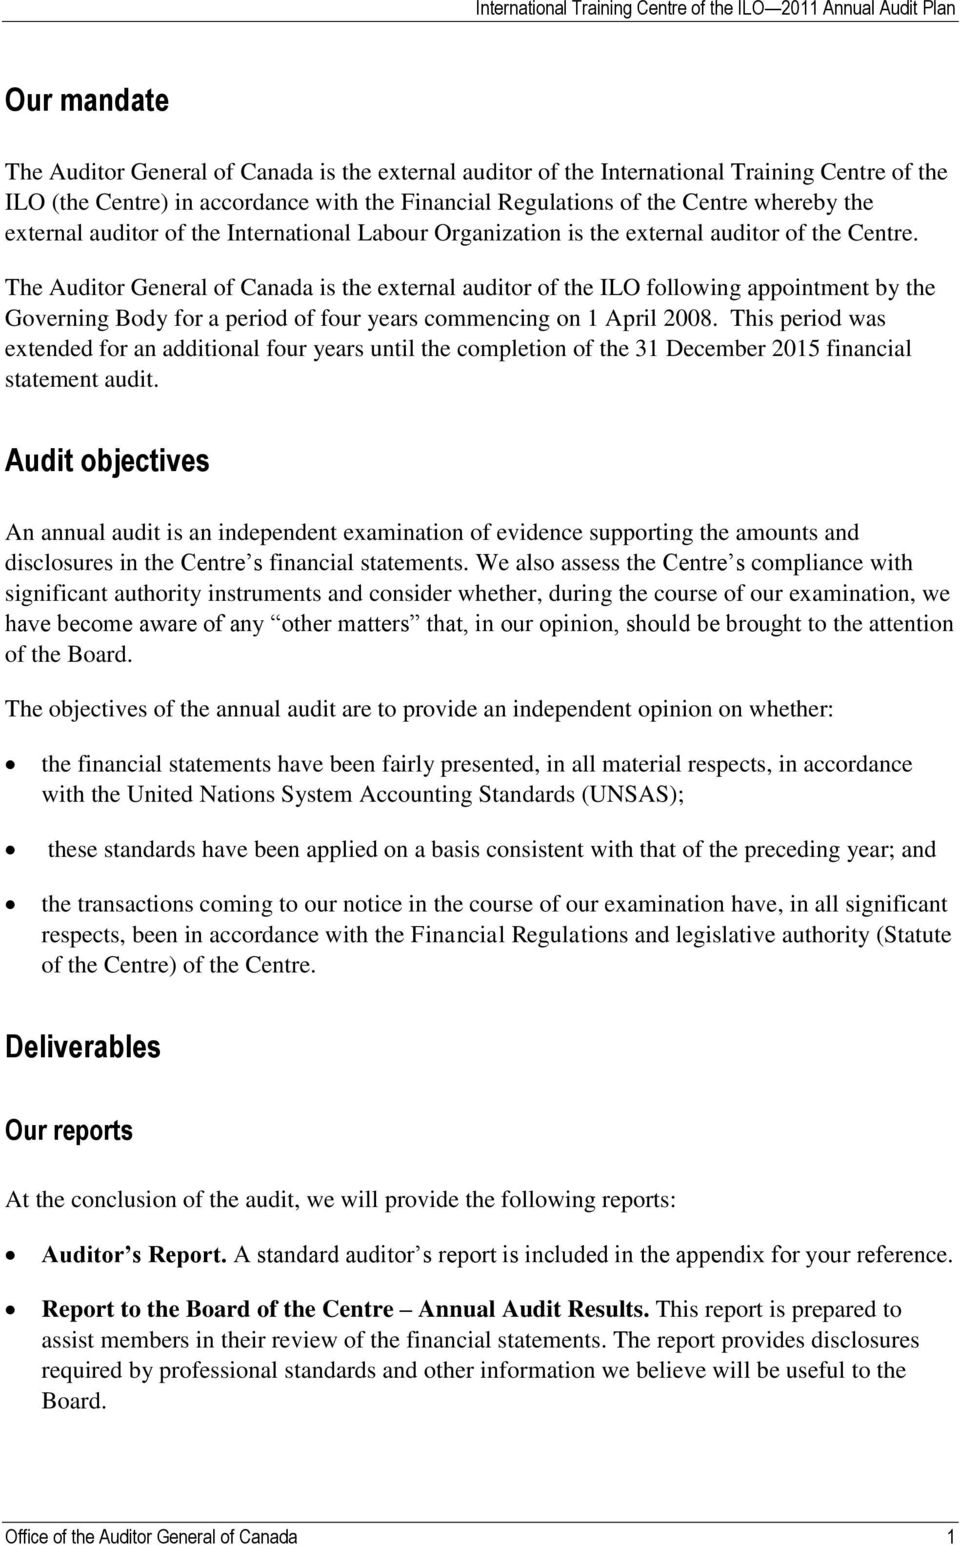 The Auditor General of Canada is the external auditor of the ILO following appointment by the Governing Body for a period of four years commencing on 1 April 2008.